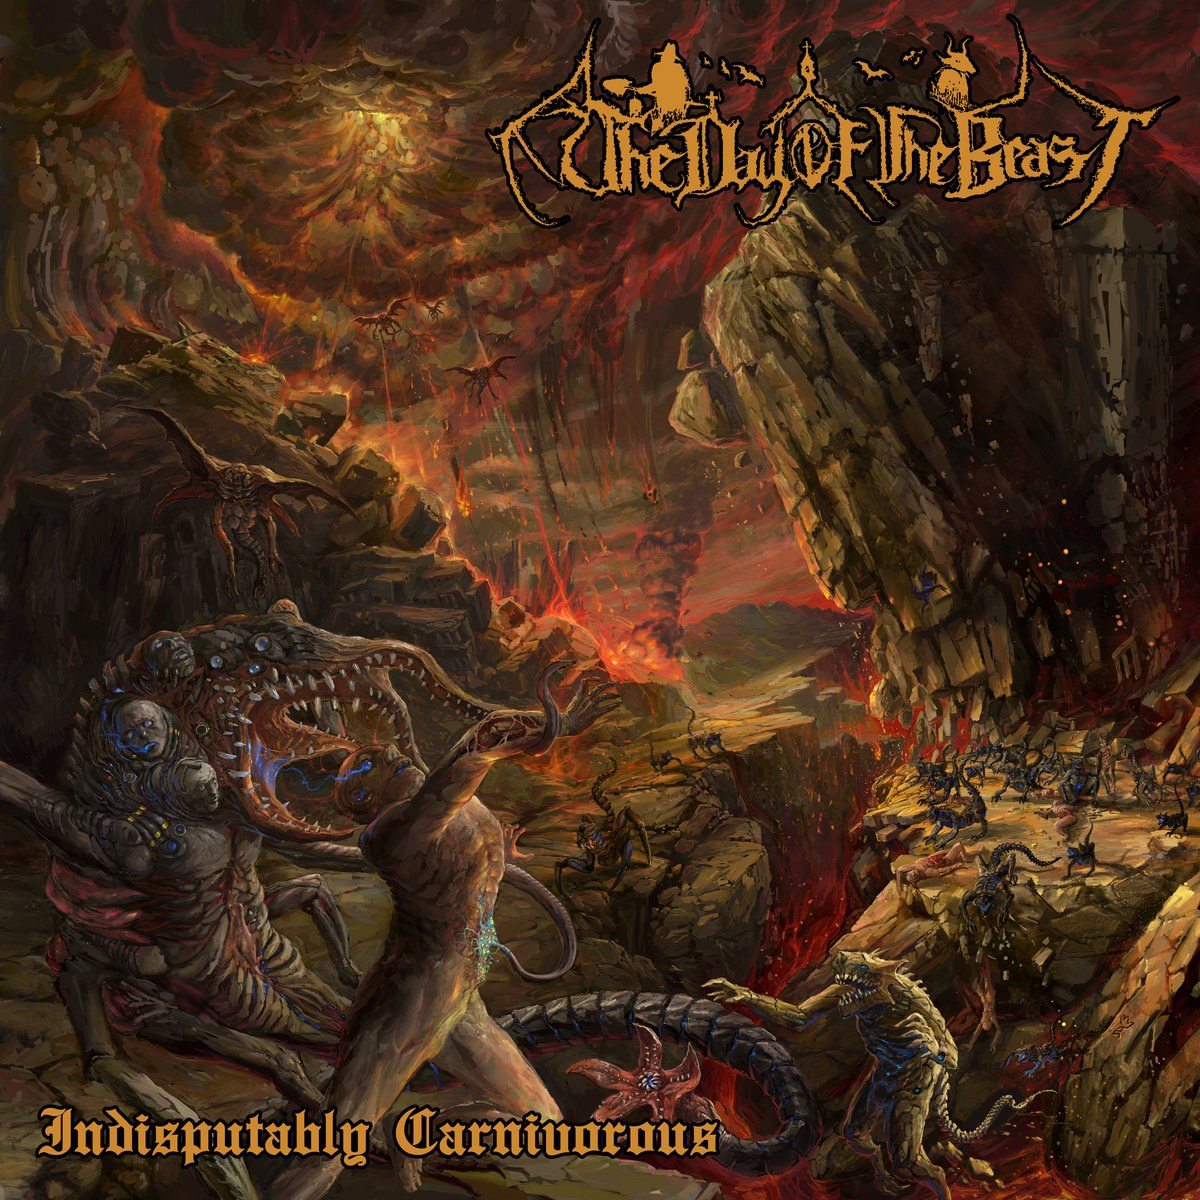 Reviews for The Day of the Beast - Indisputably Carnivorous